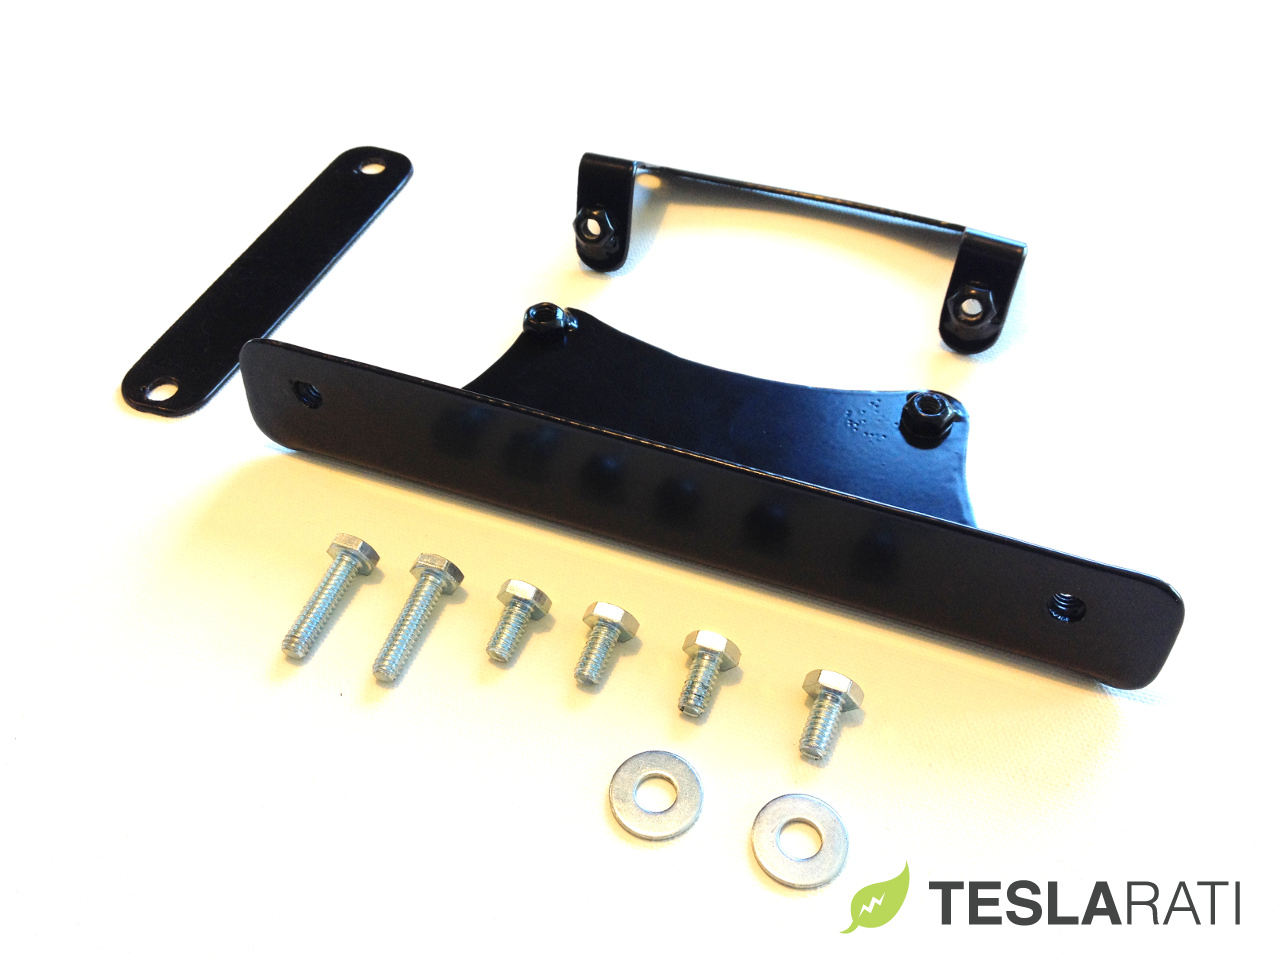 Torklift-Font-Plate-Bracket-Parts-Overview